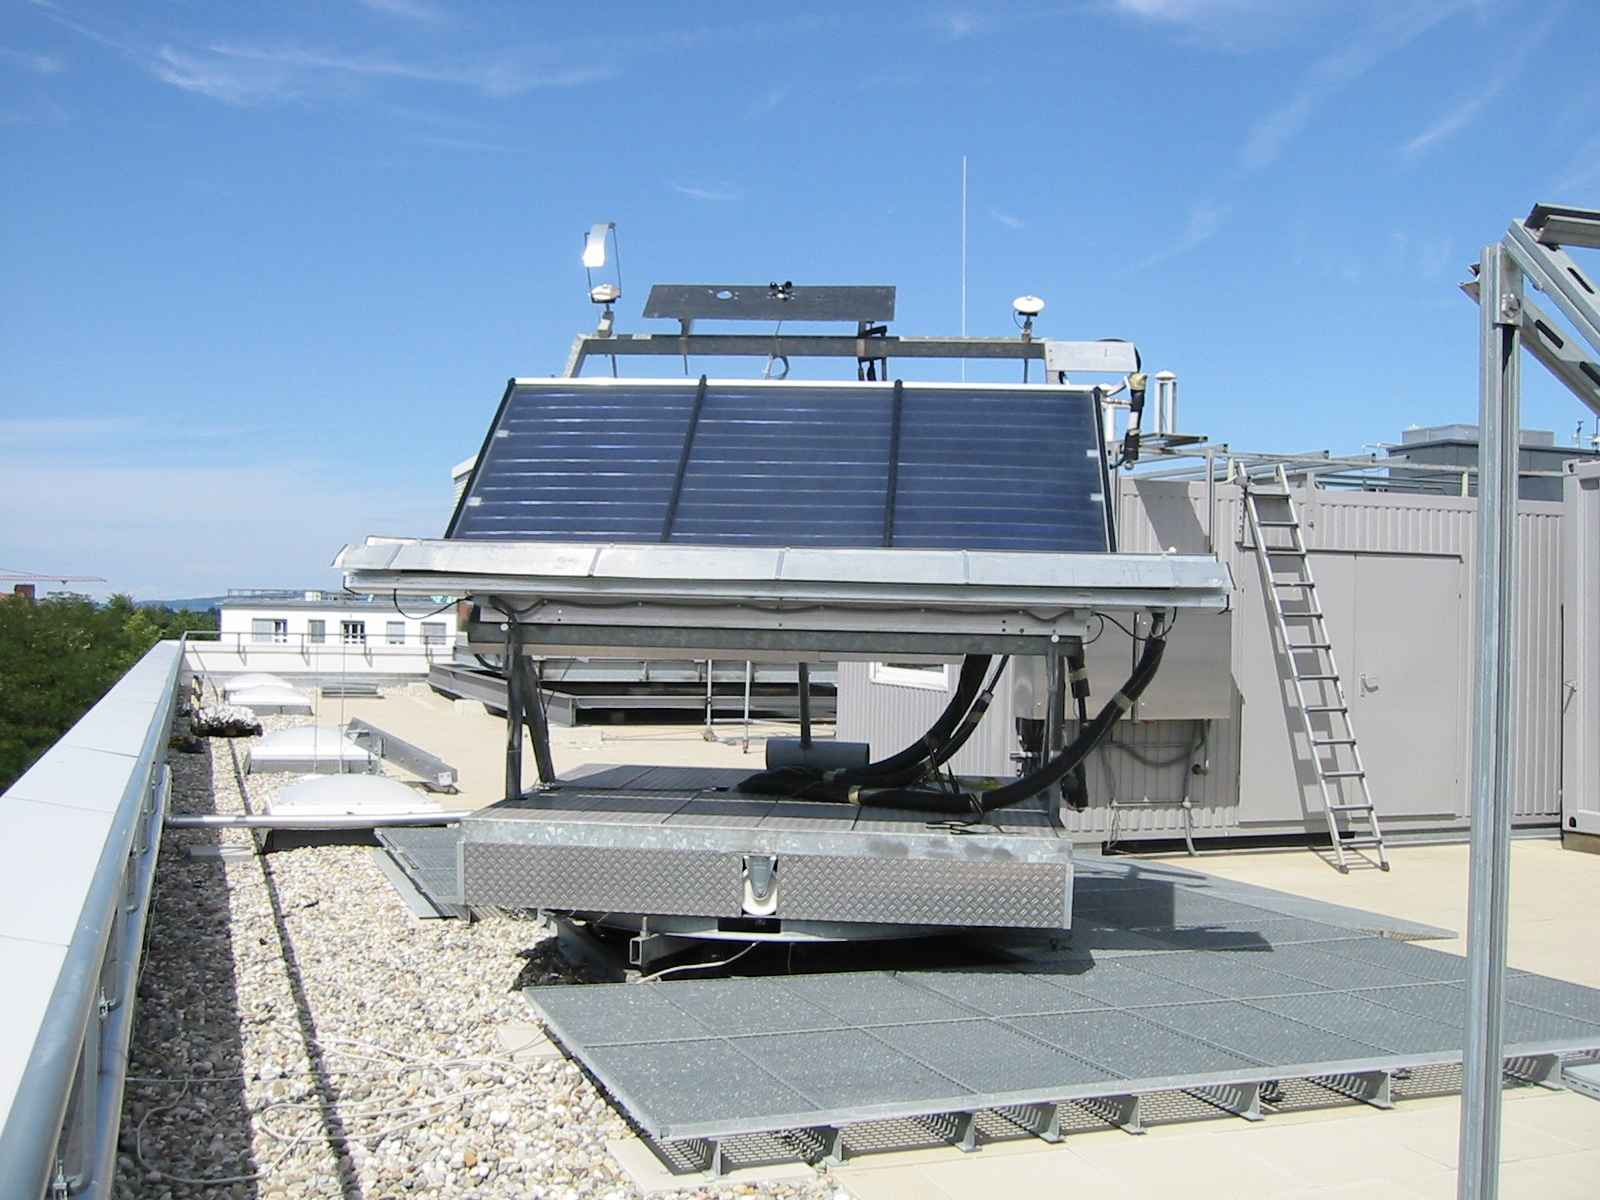 Fraunhofer ISE Solar Heat Europe – Outdoor collector test facilities with tracker